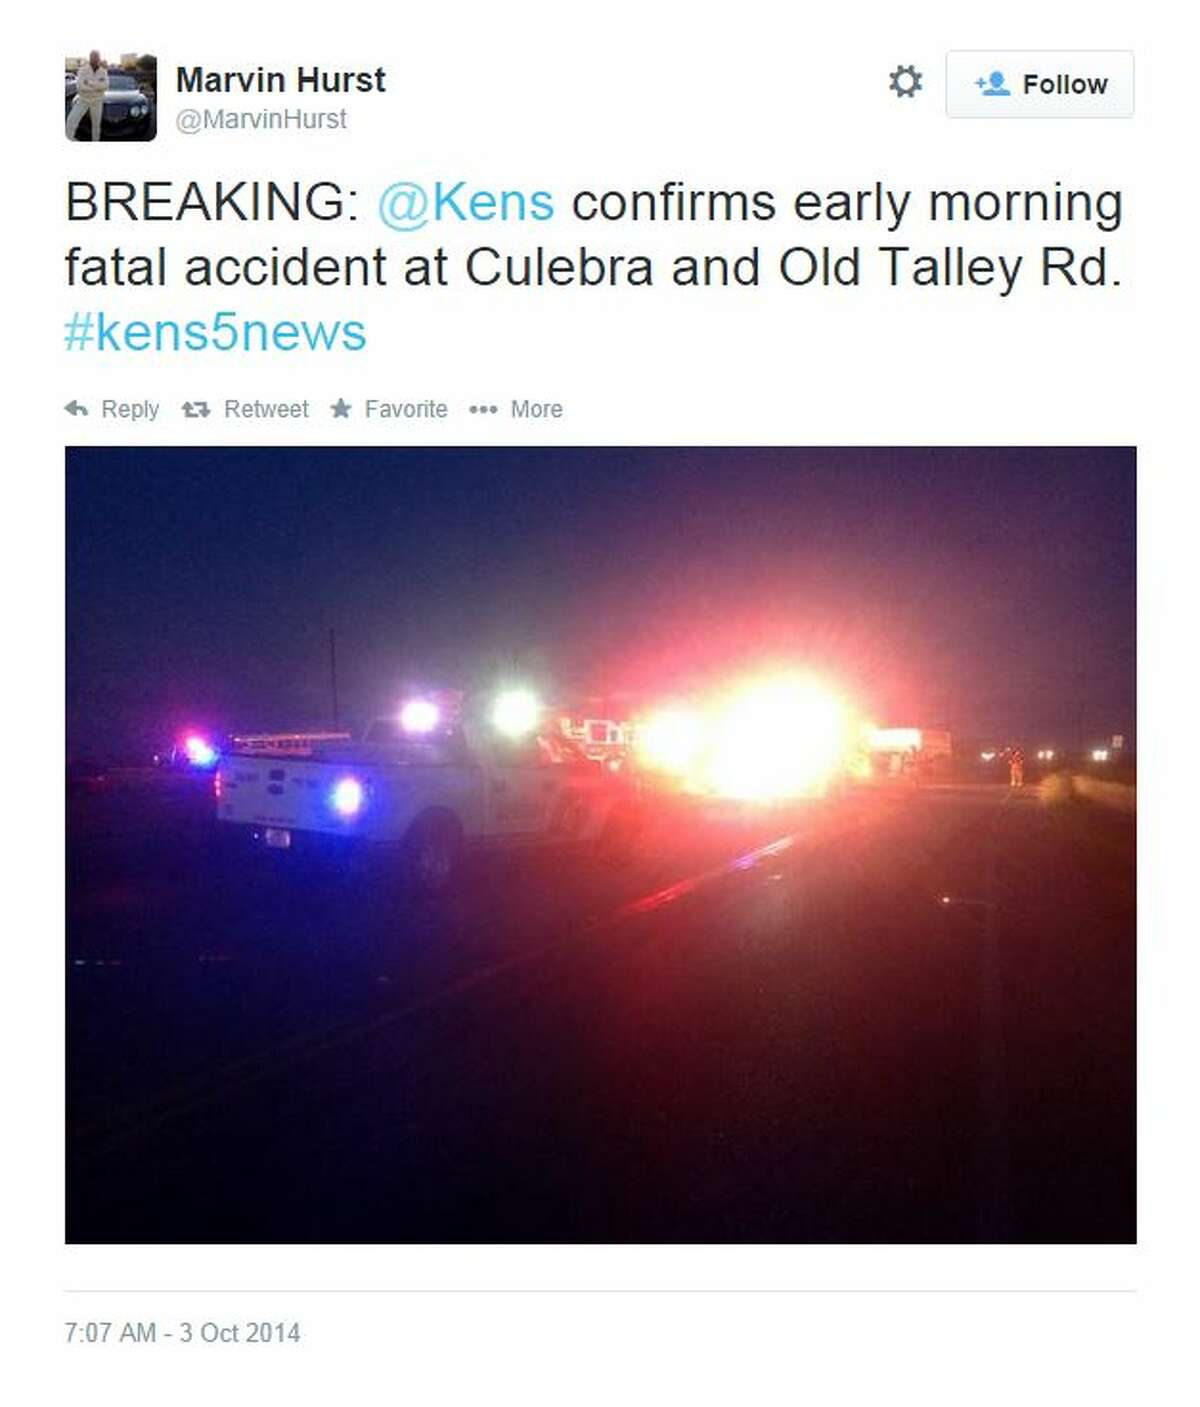 """@MarvinHurst tweeted, """"BREAKING: @Kens confirms early morning fatal accident at Culebra and Old Talley Rd. #kens5news"""""""